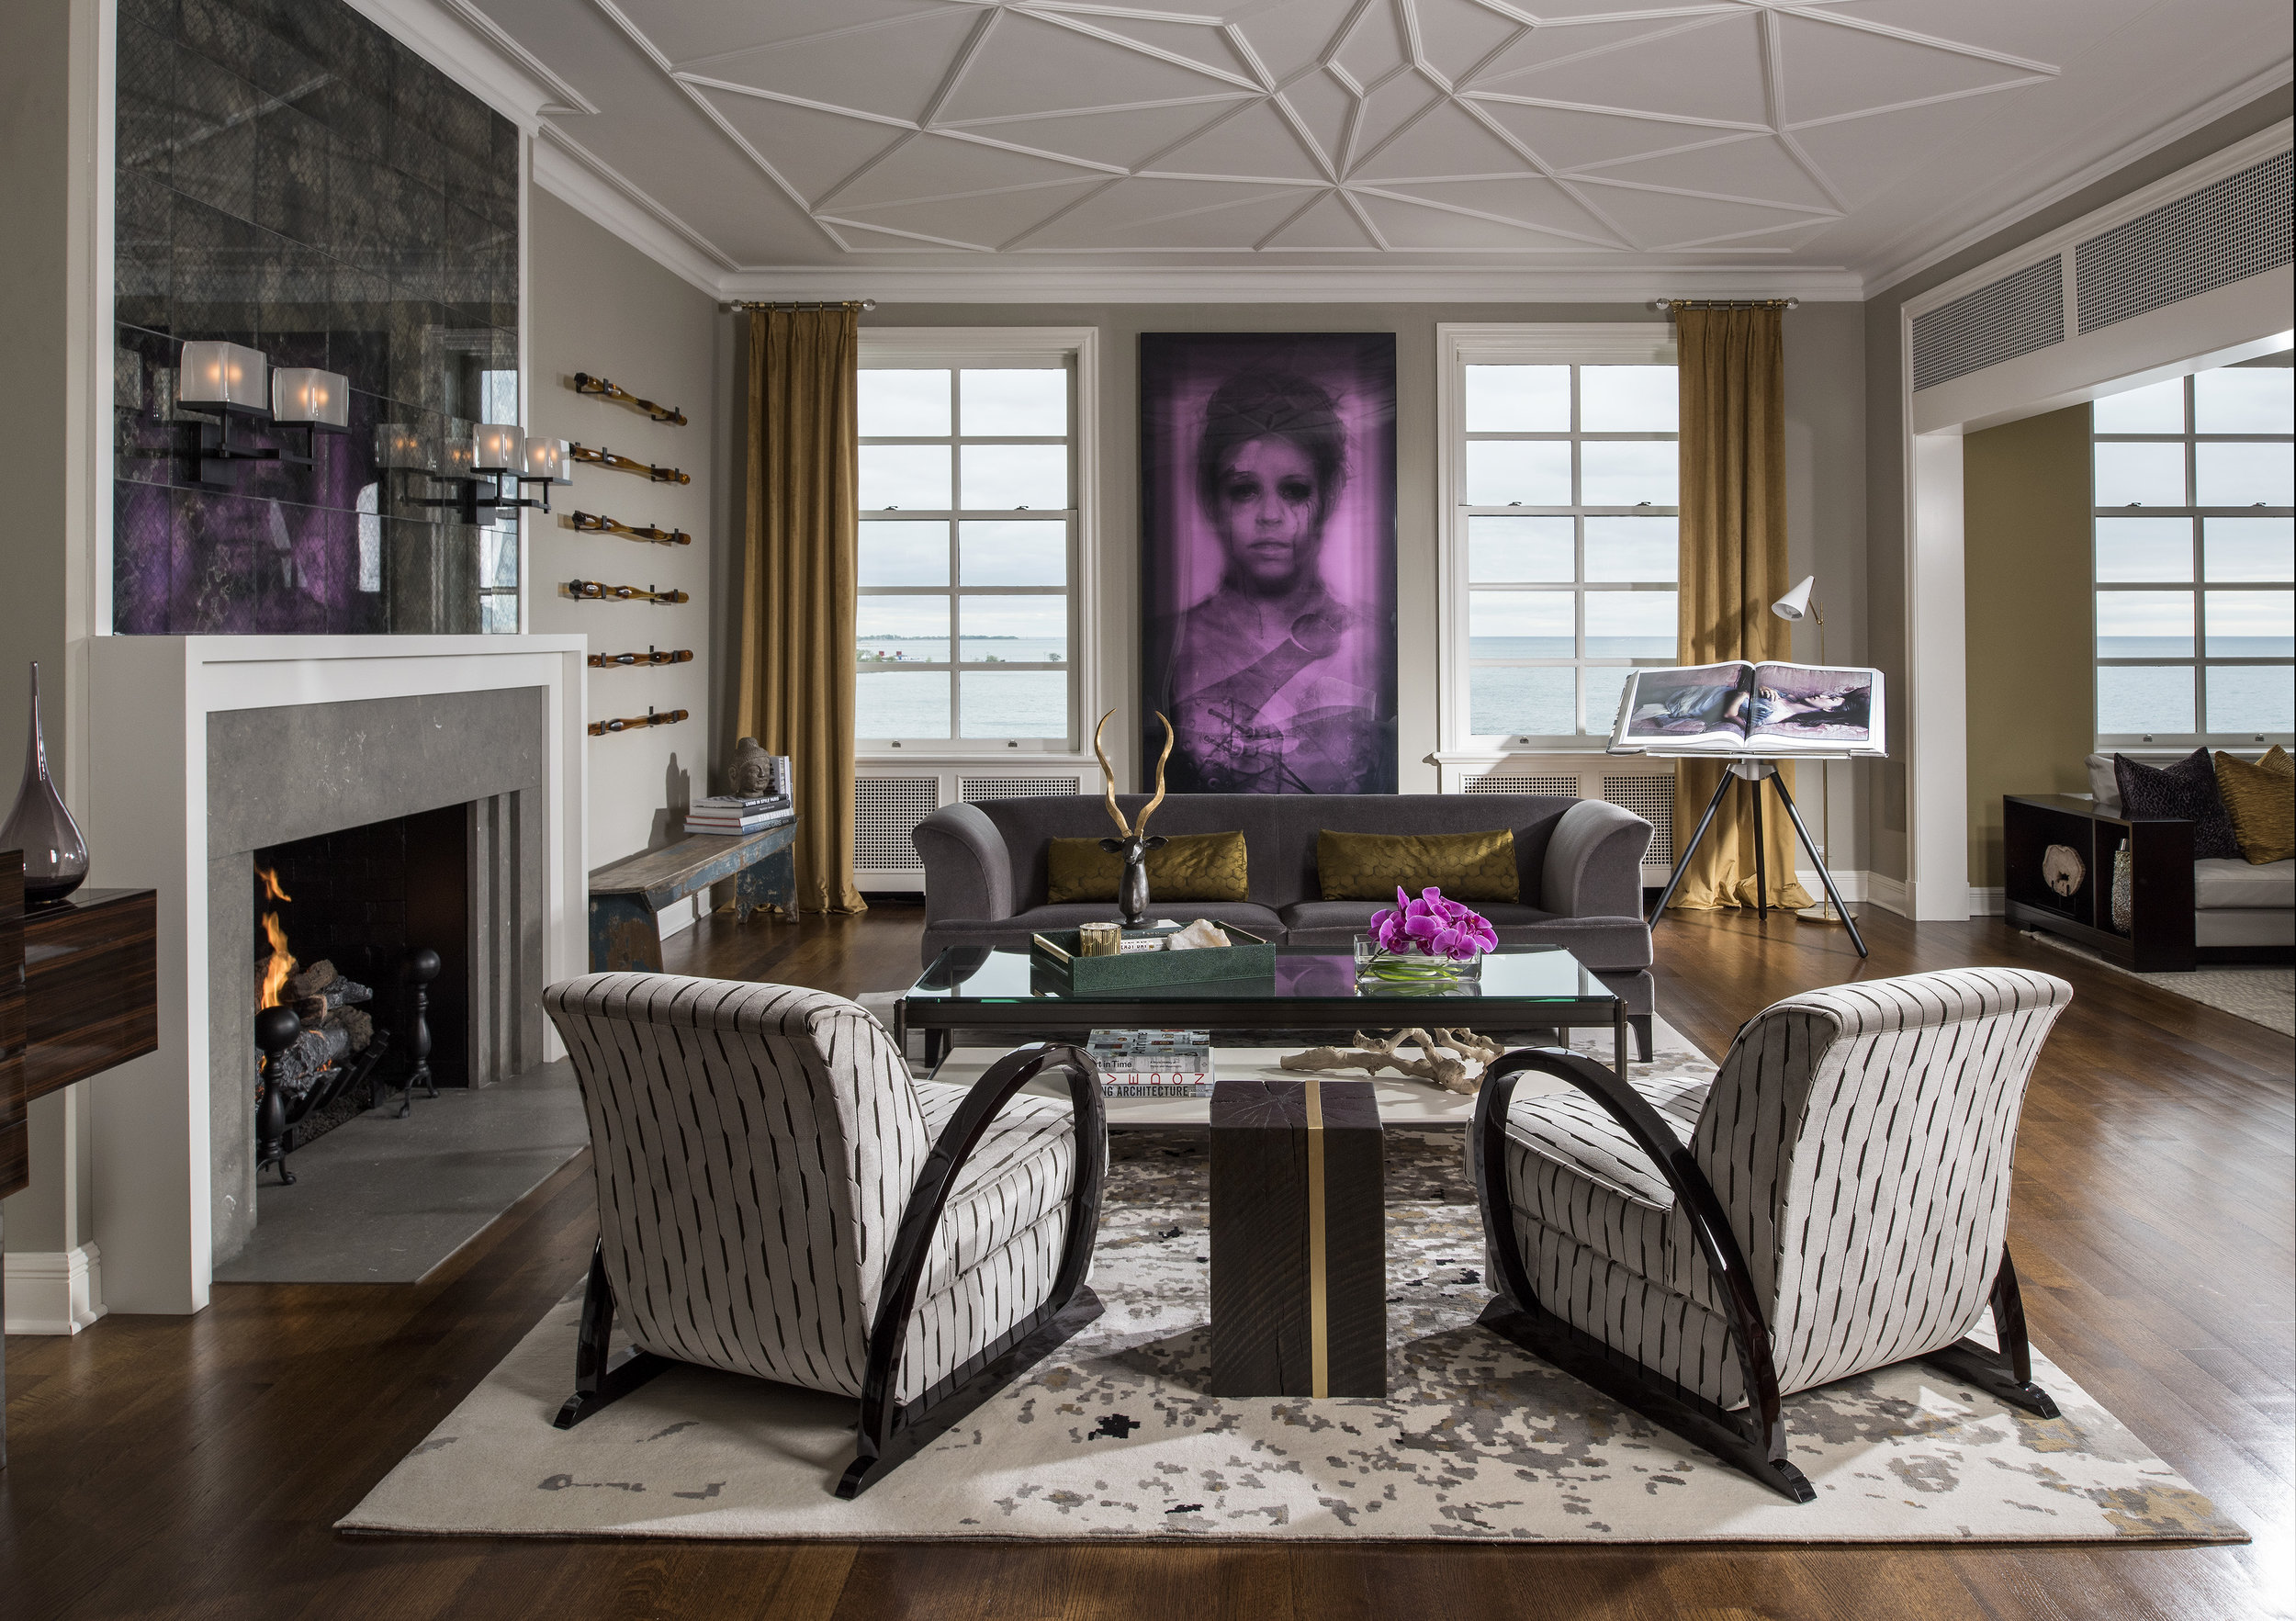 Donna Mondi Interior Design Chicago Interior Designer